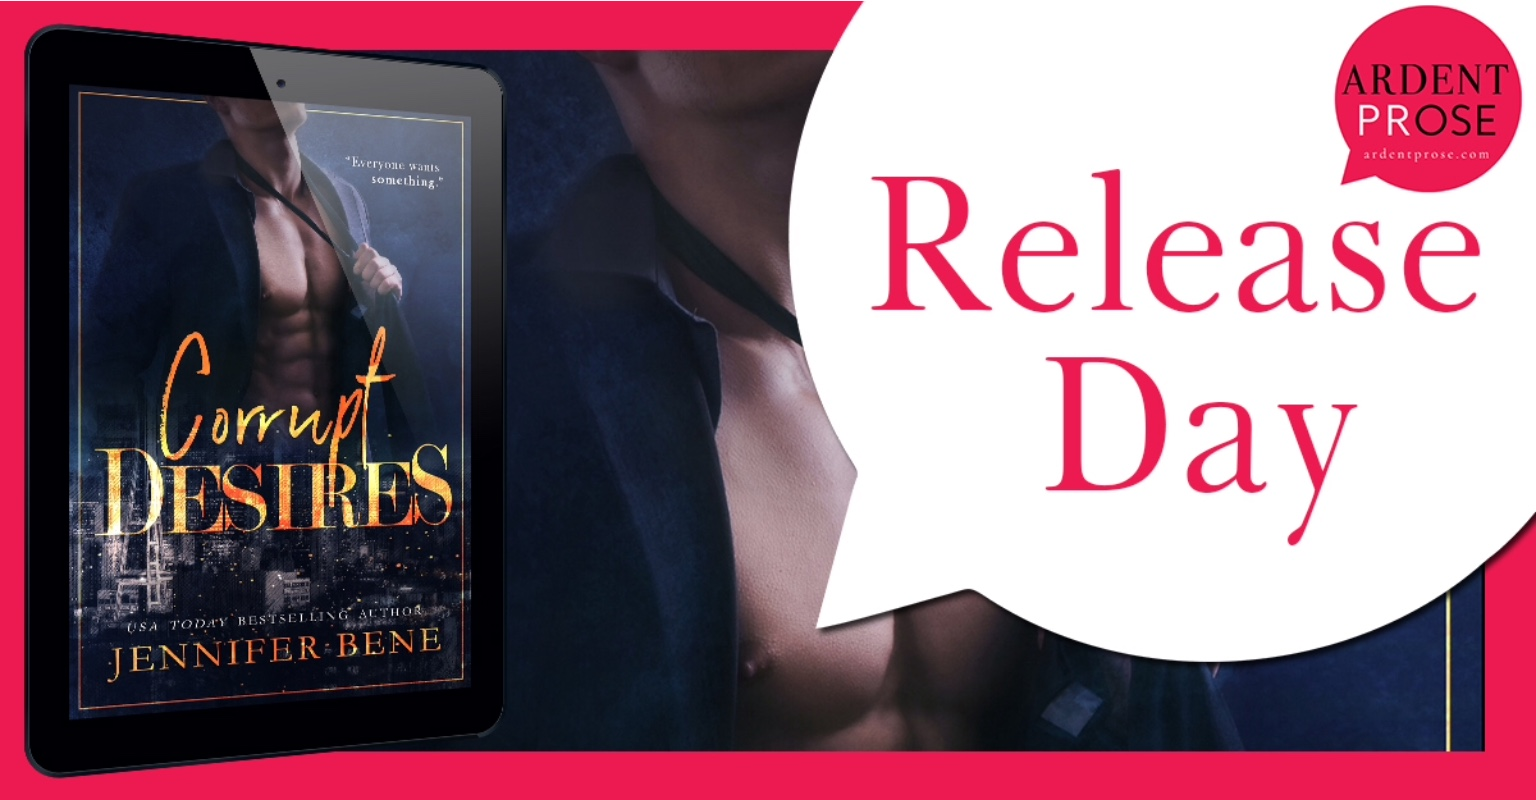 CORRUPT DESIRES by Jennifer Bene @jbeneauthor @ArdentPRose #NewRelease #AvailableNow #Excerpt #Review #TheUnratedBookshelf